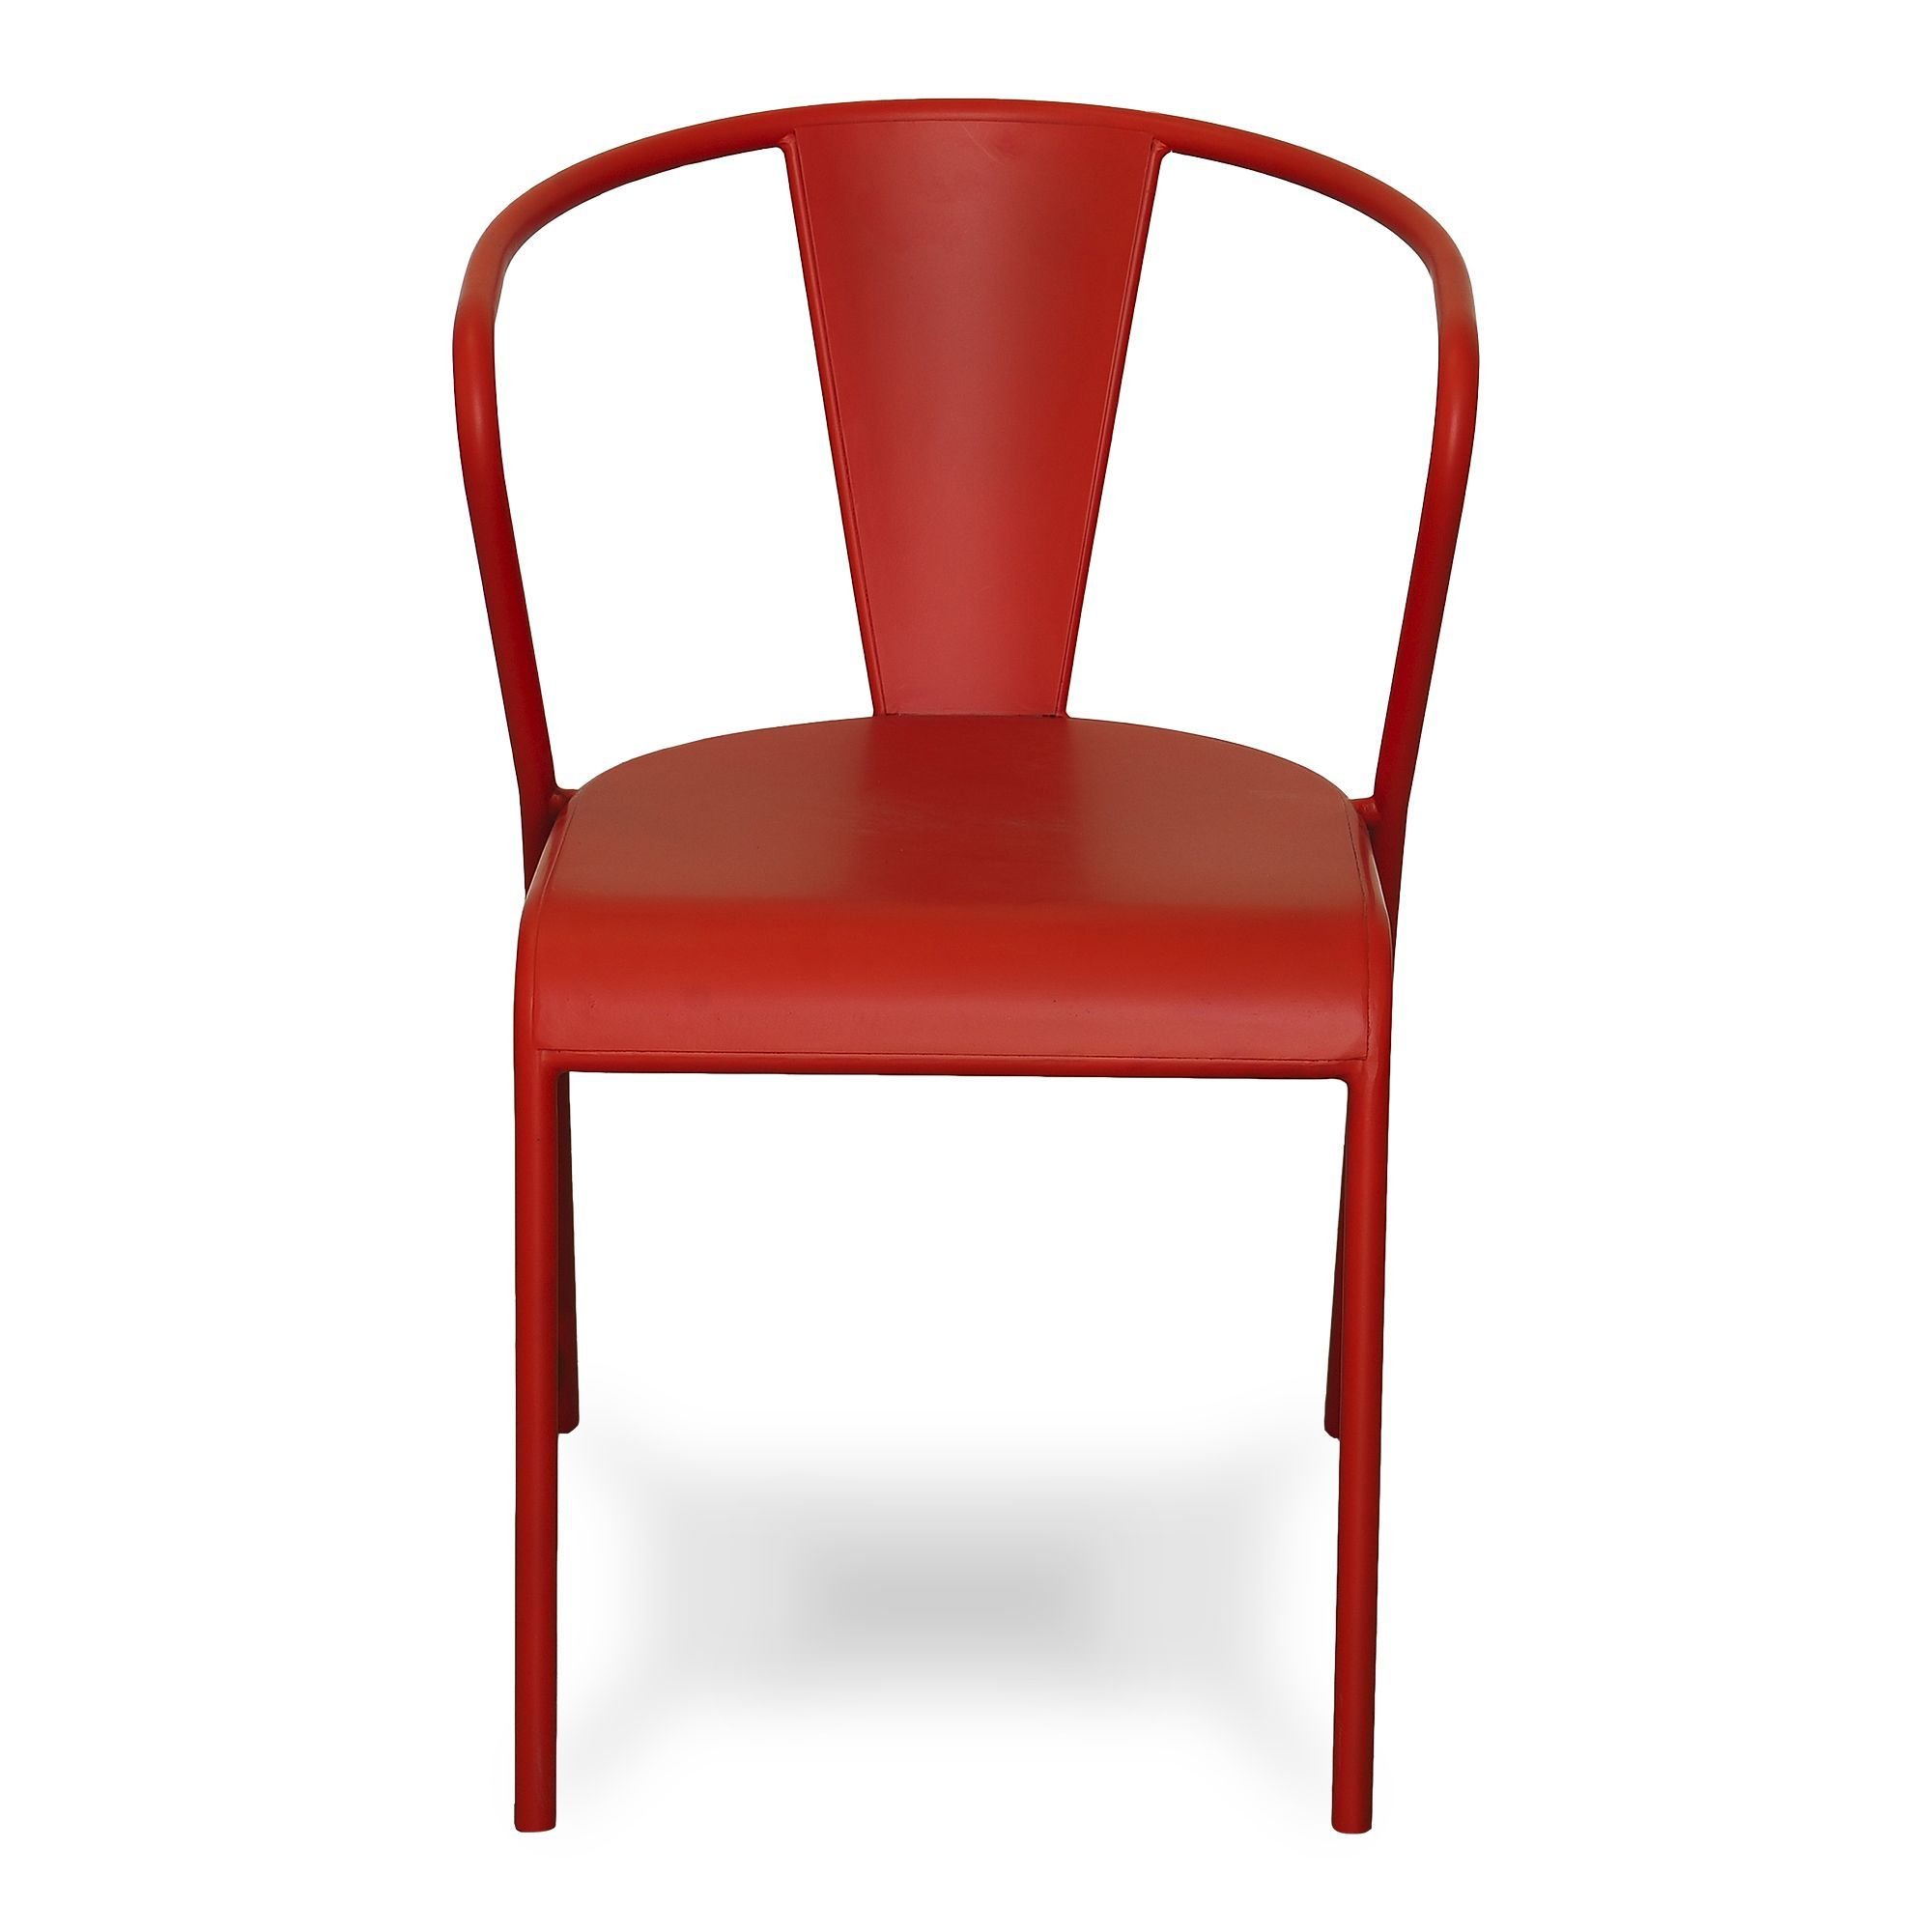 chaise rouge en acier design rouge akaros chaises tables et chaises salon - Chaise Salon Design